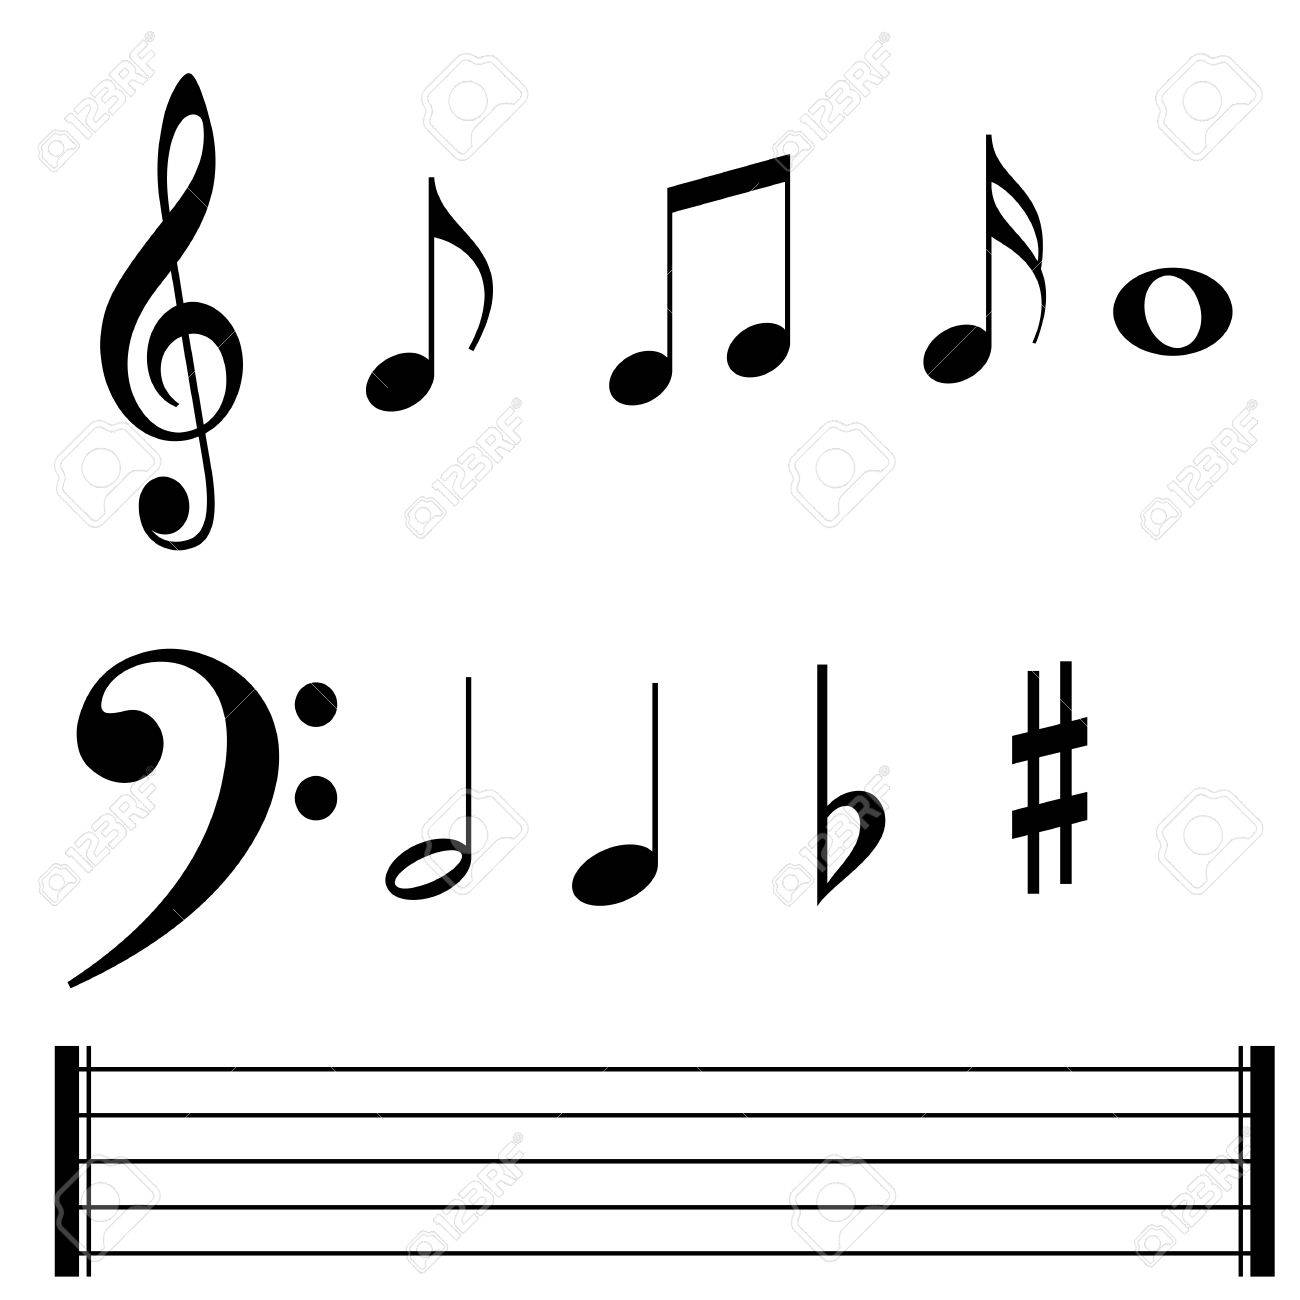 Music Note Symbols And Lines Stock Photo Picture And Royalty Free